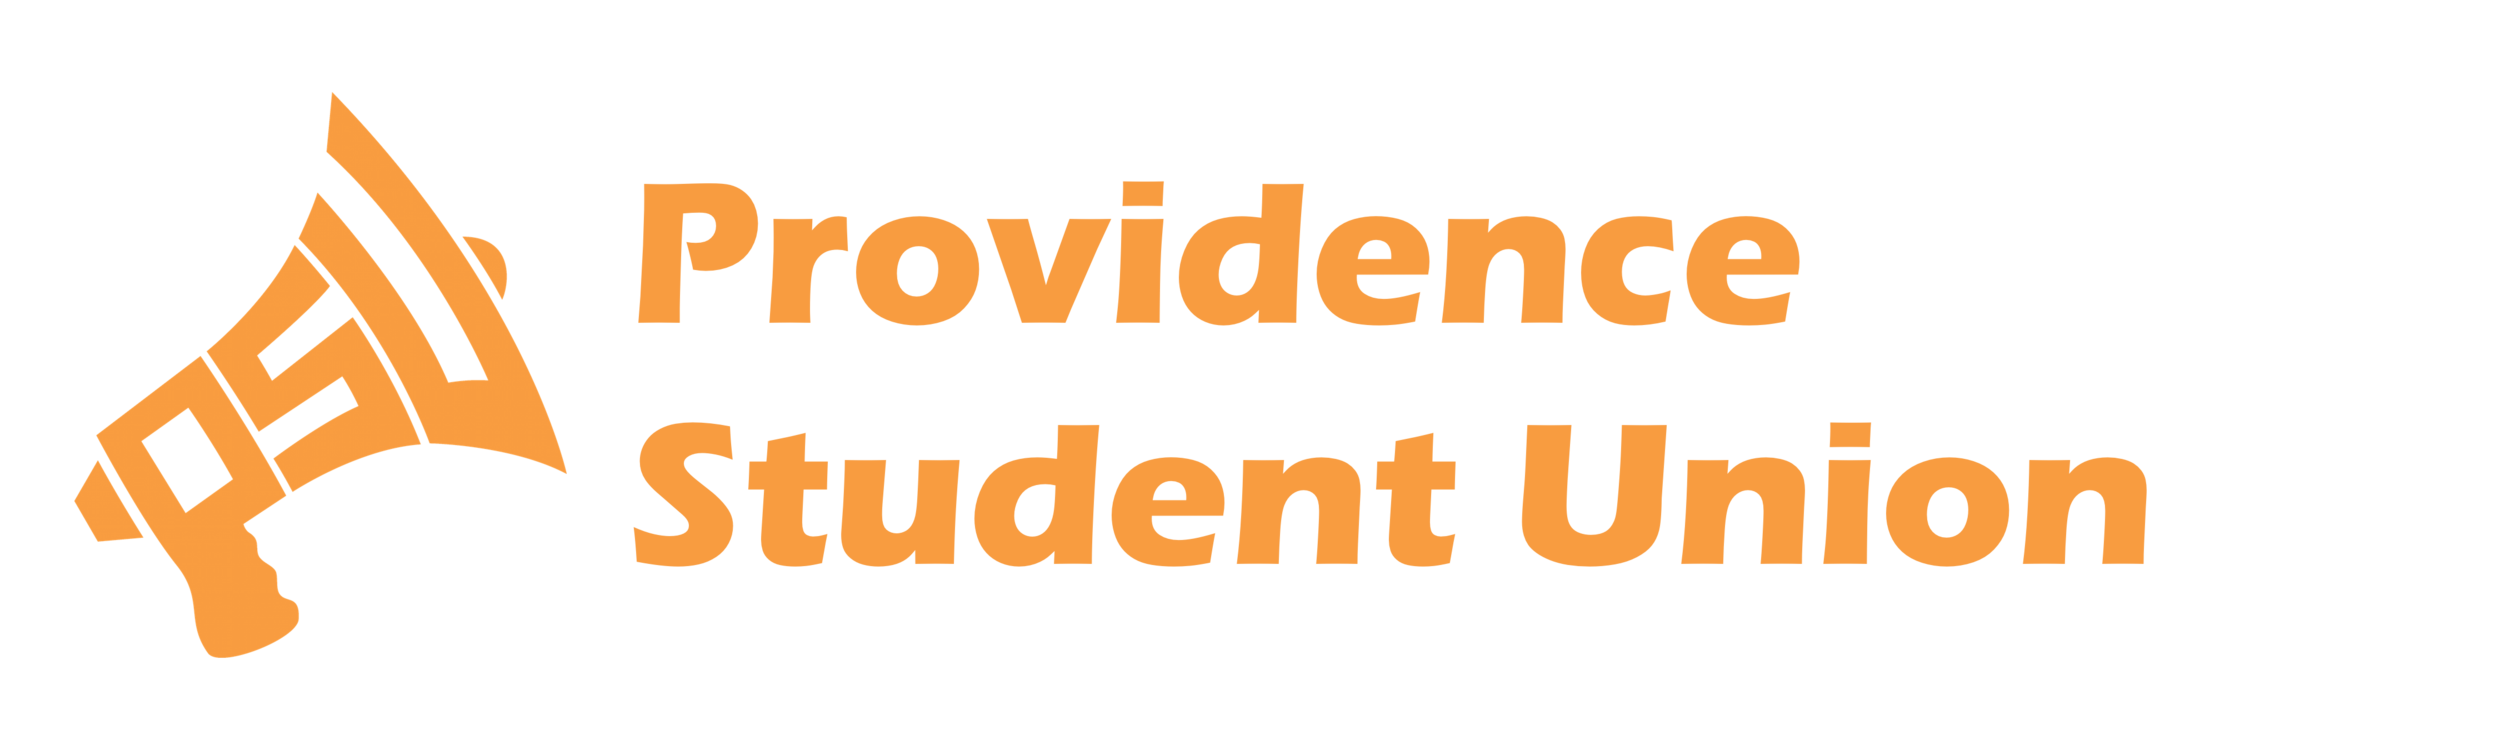 Providence Student Union logo in orange with a megaphone on the left.